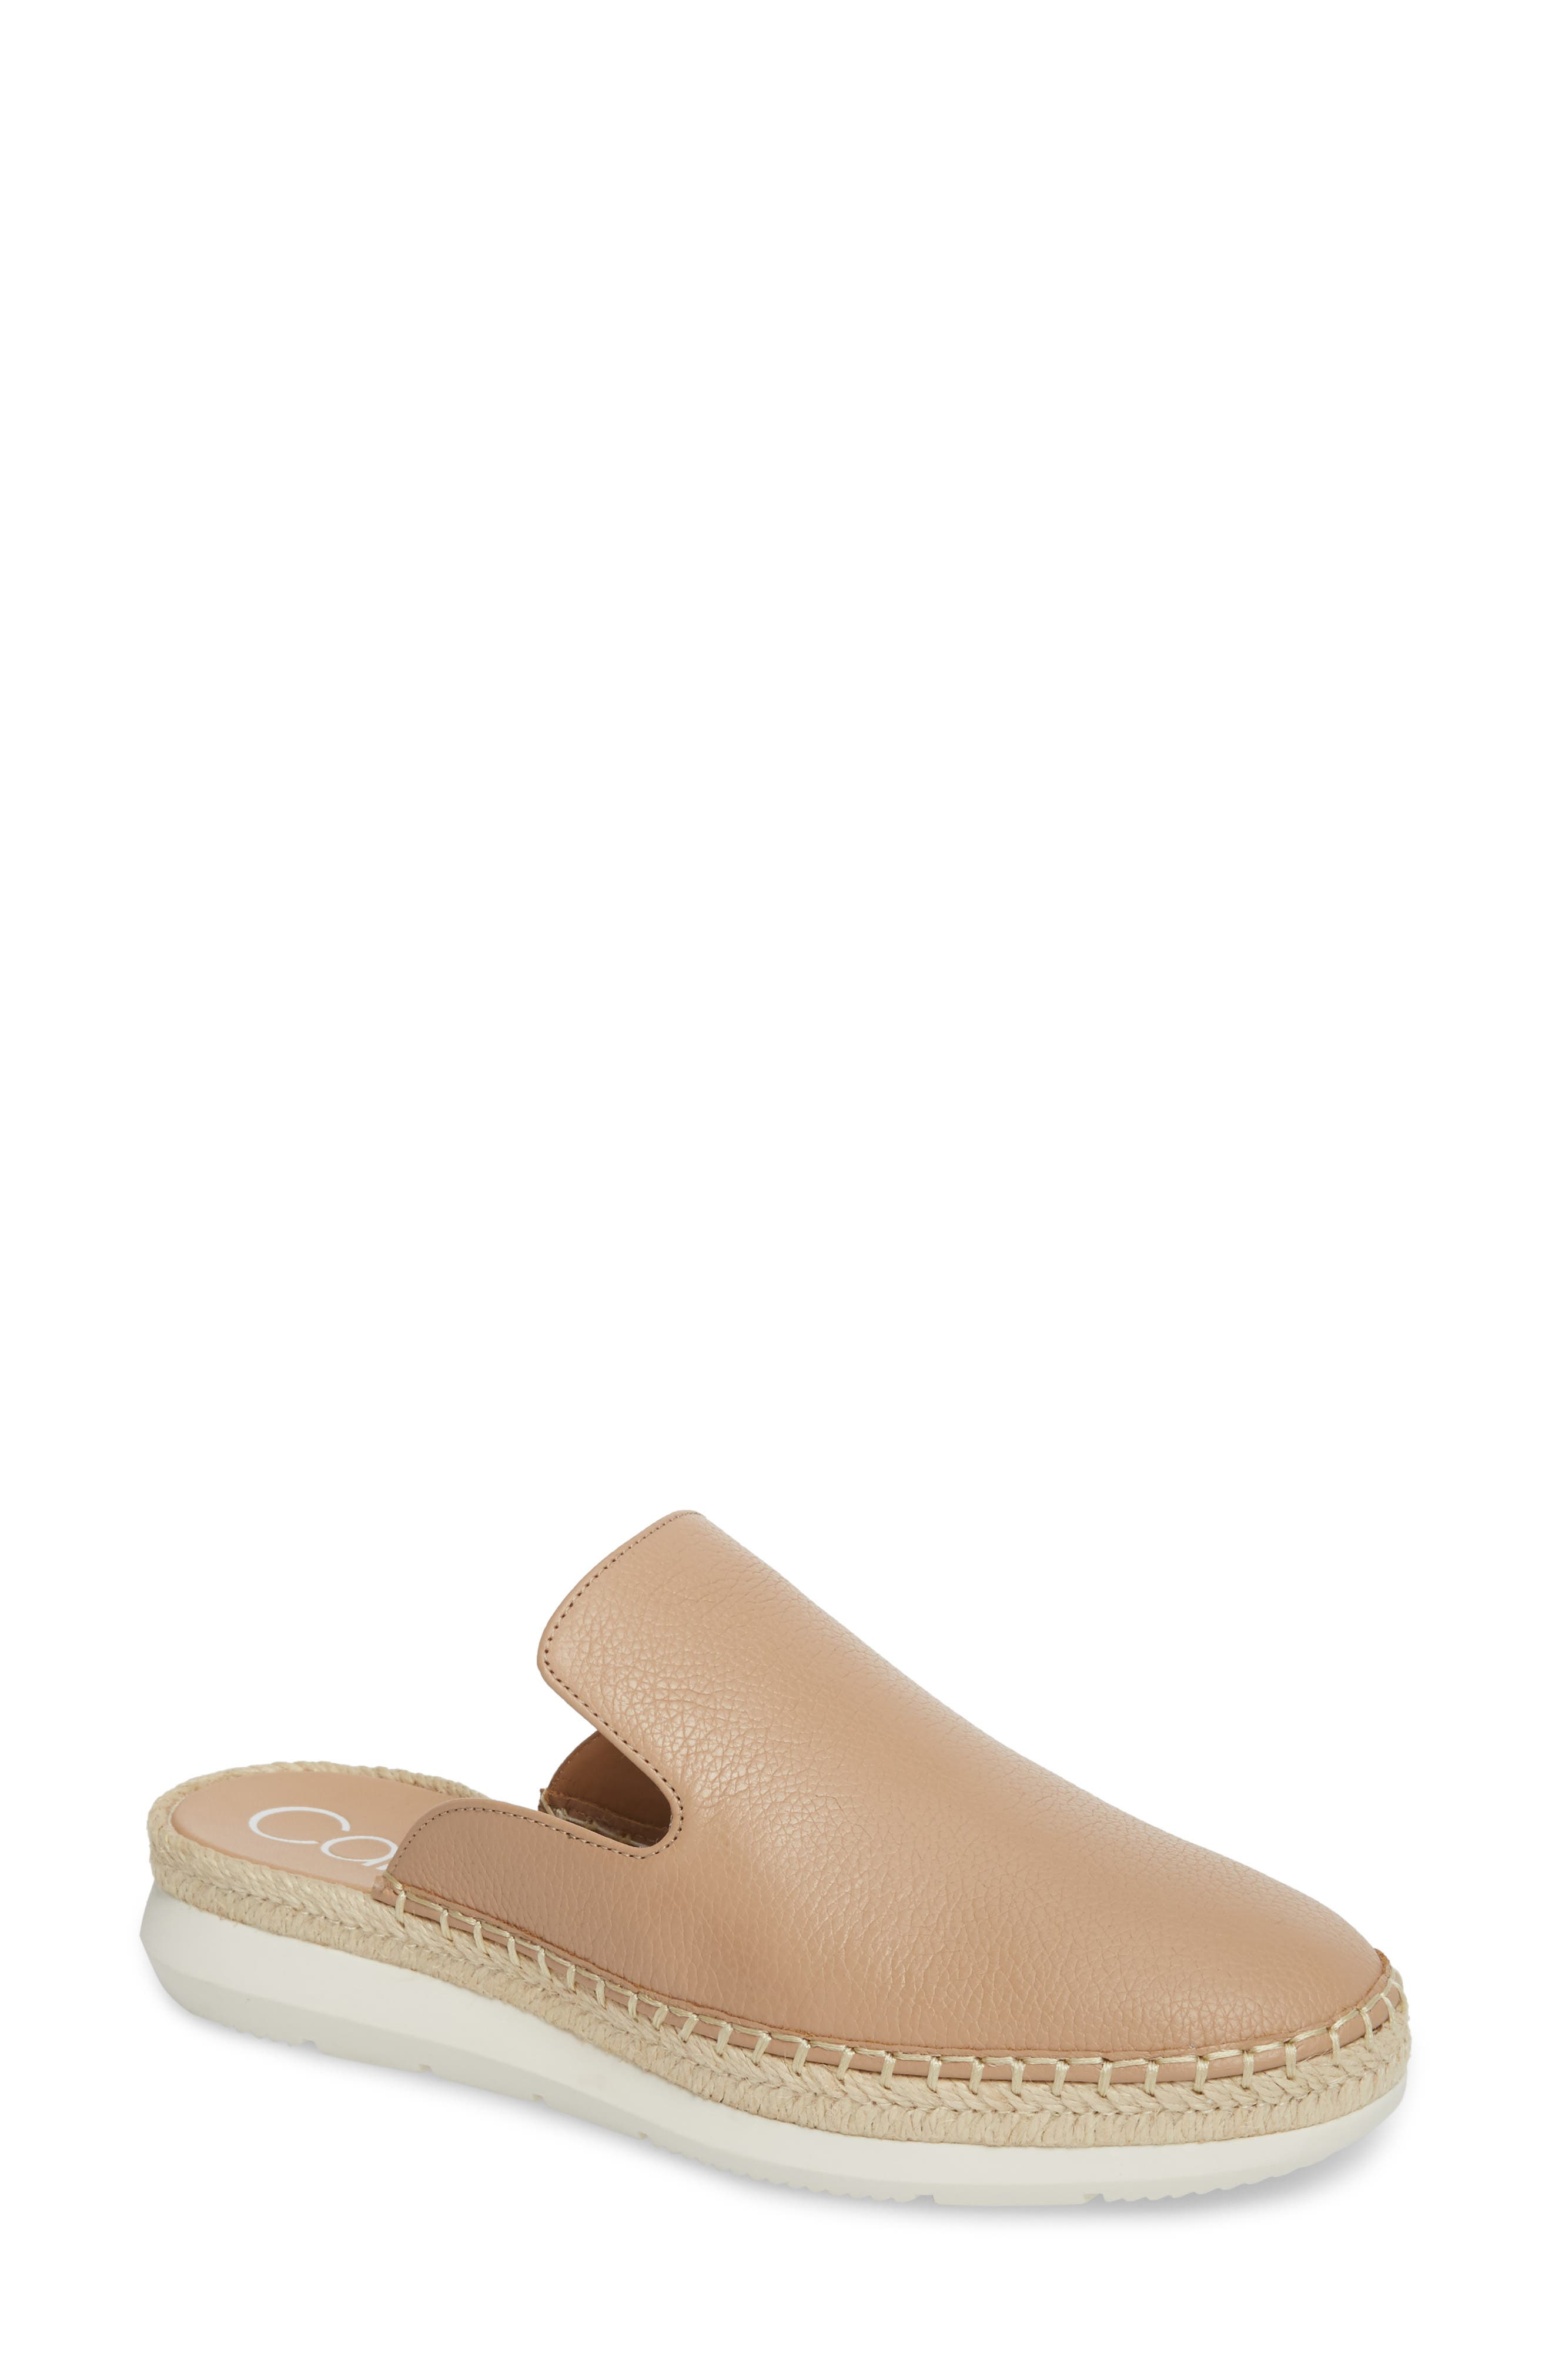 Verie Espadrille Loafer Mule,                             Main thumbnail 1, color,                             Desert Sand Pebble Leather